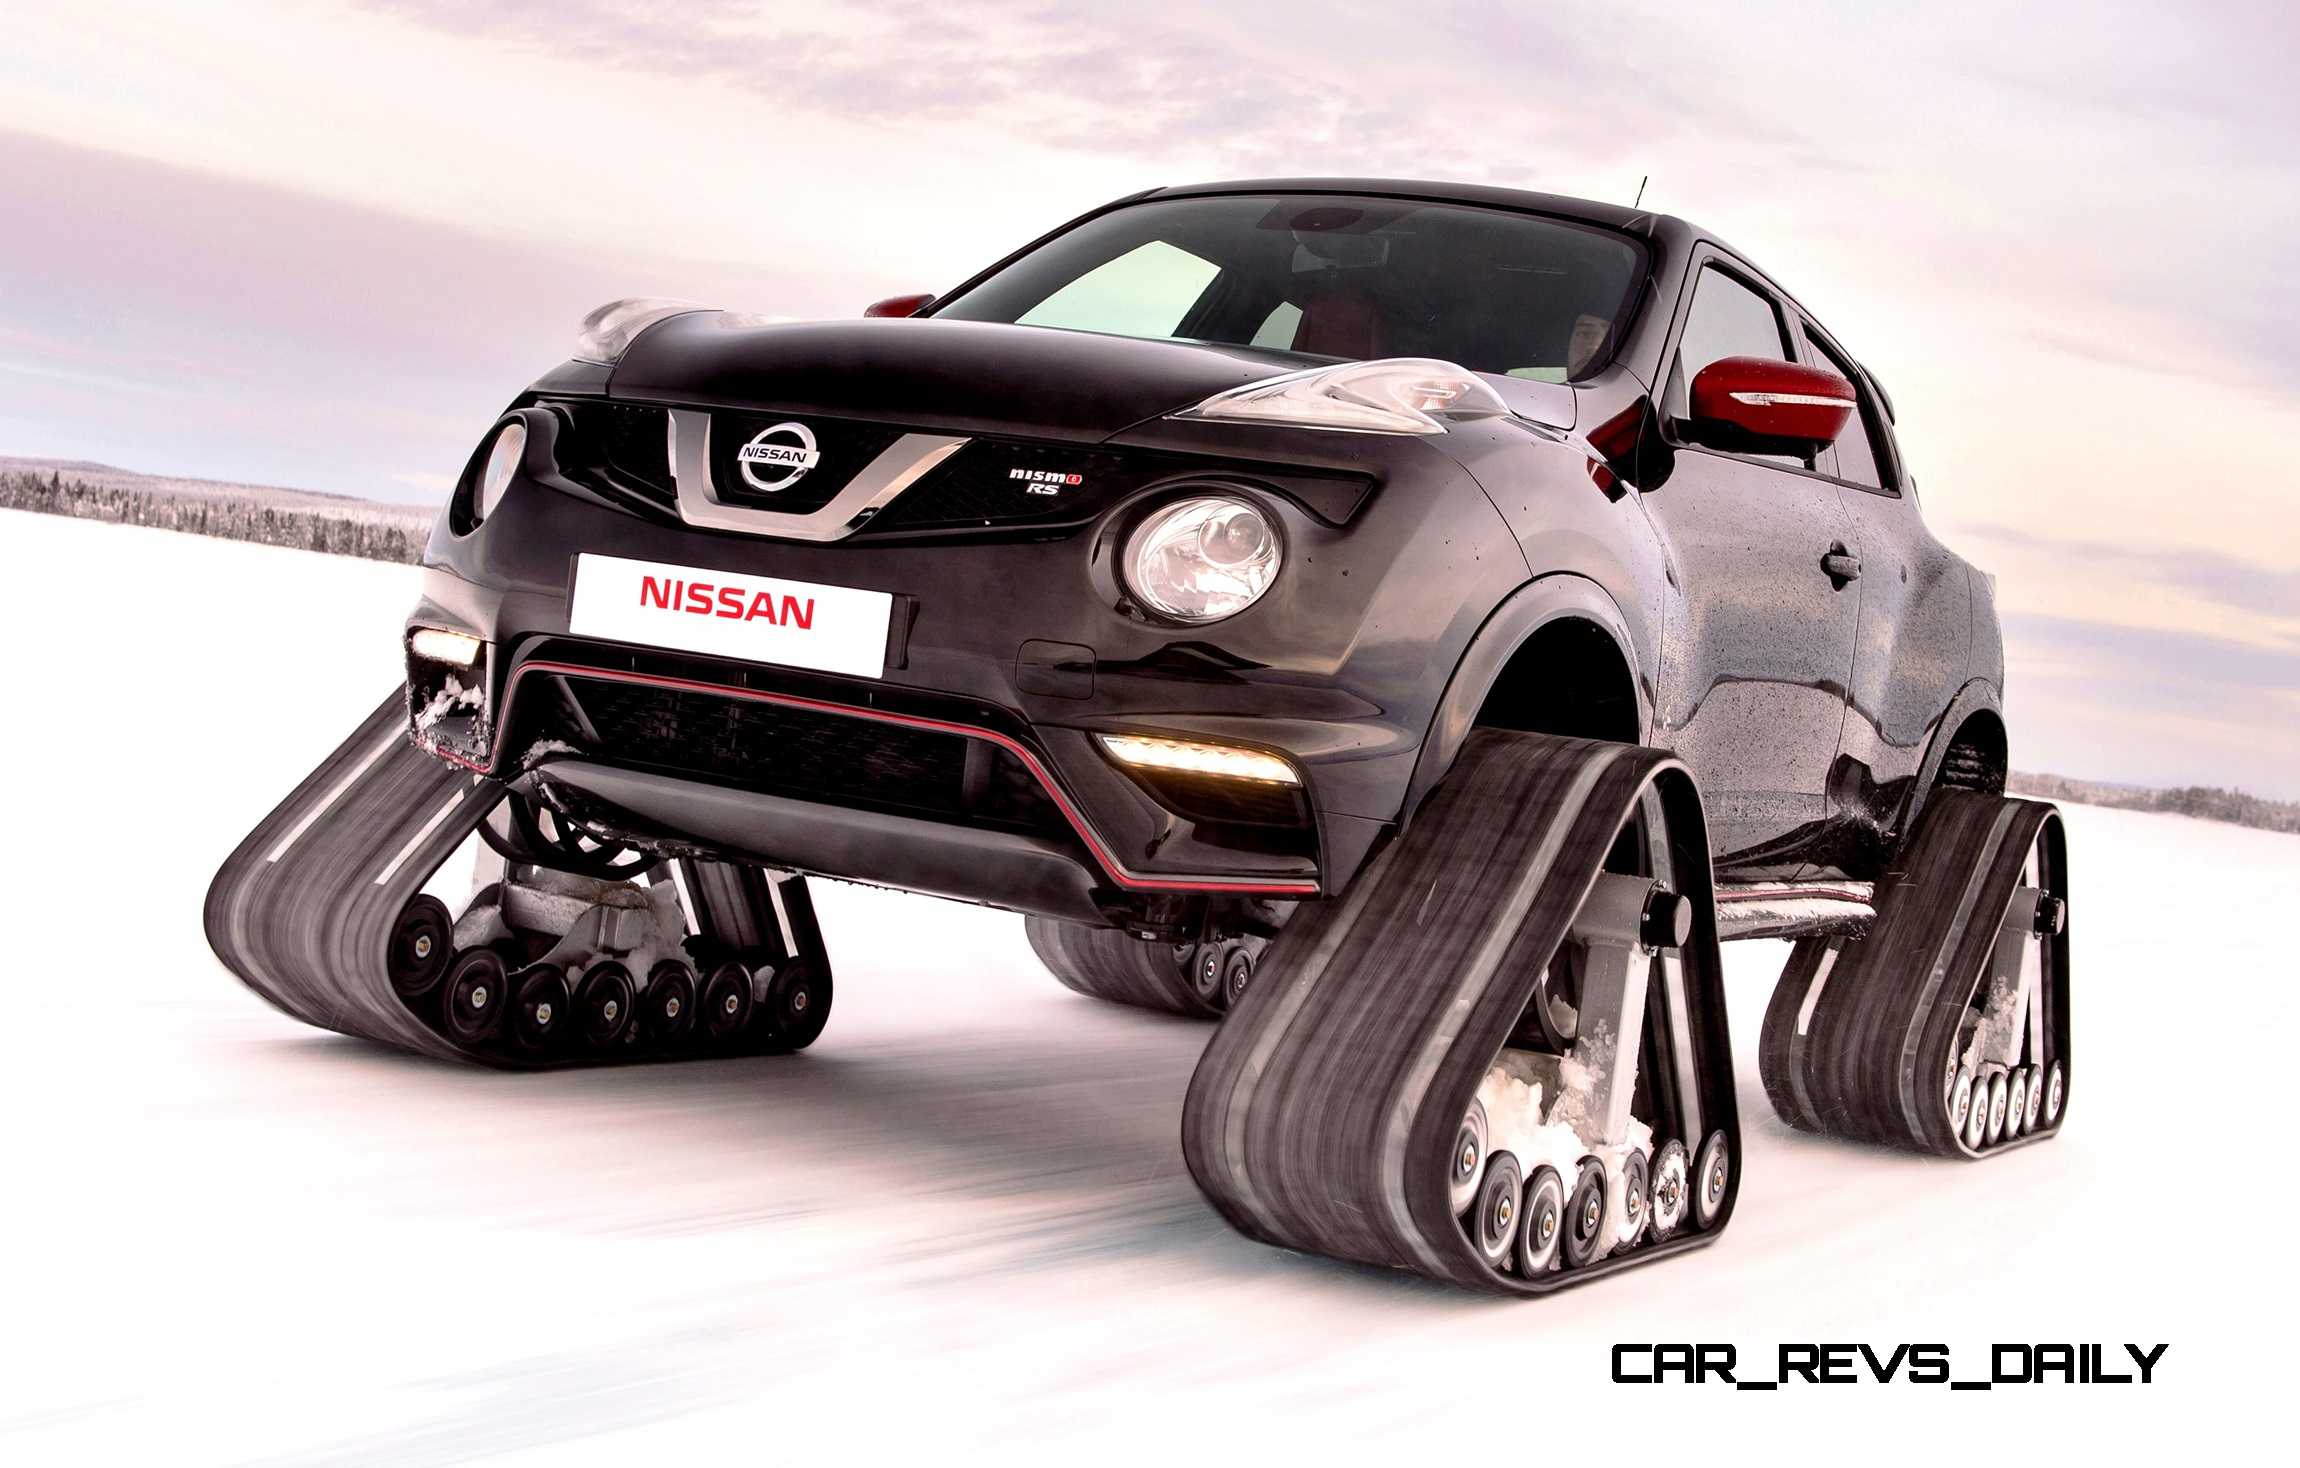 2019 Nissan Juke Nismo Concept | Car Photos Catalog 2019